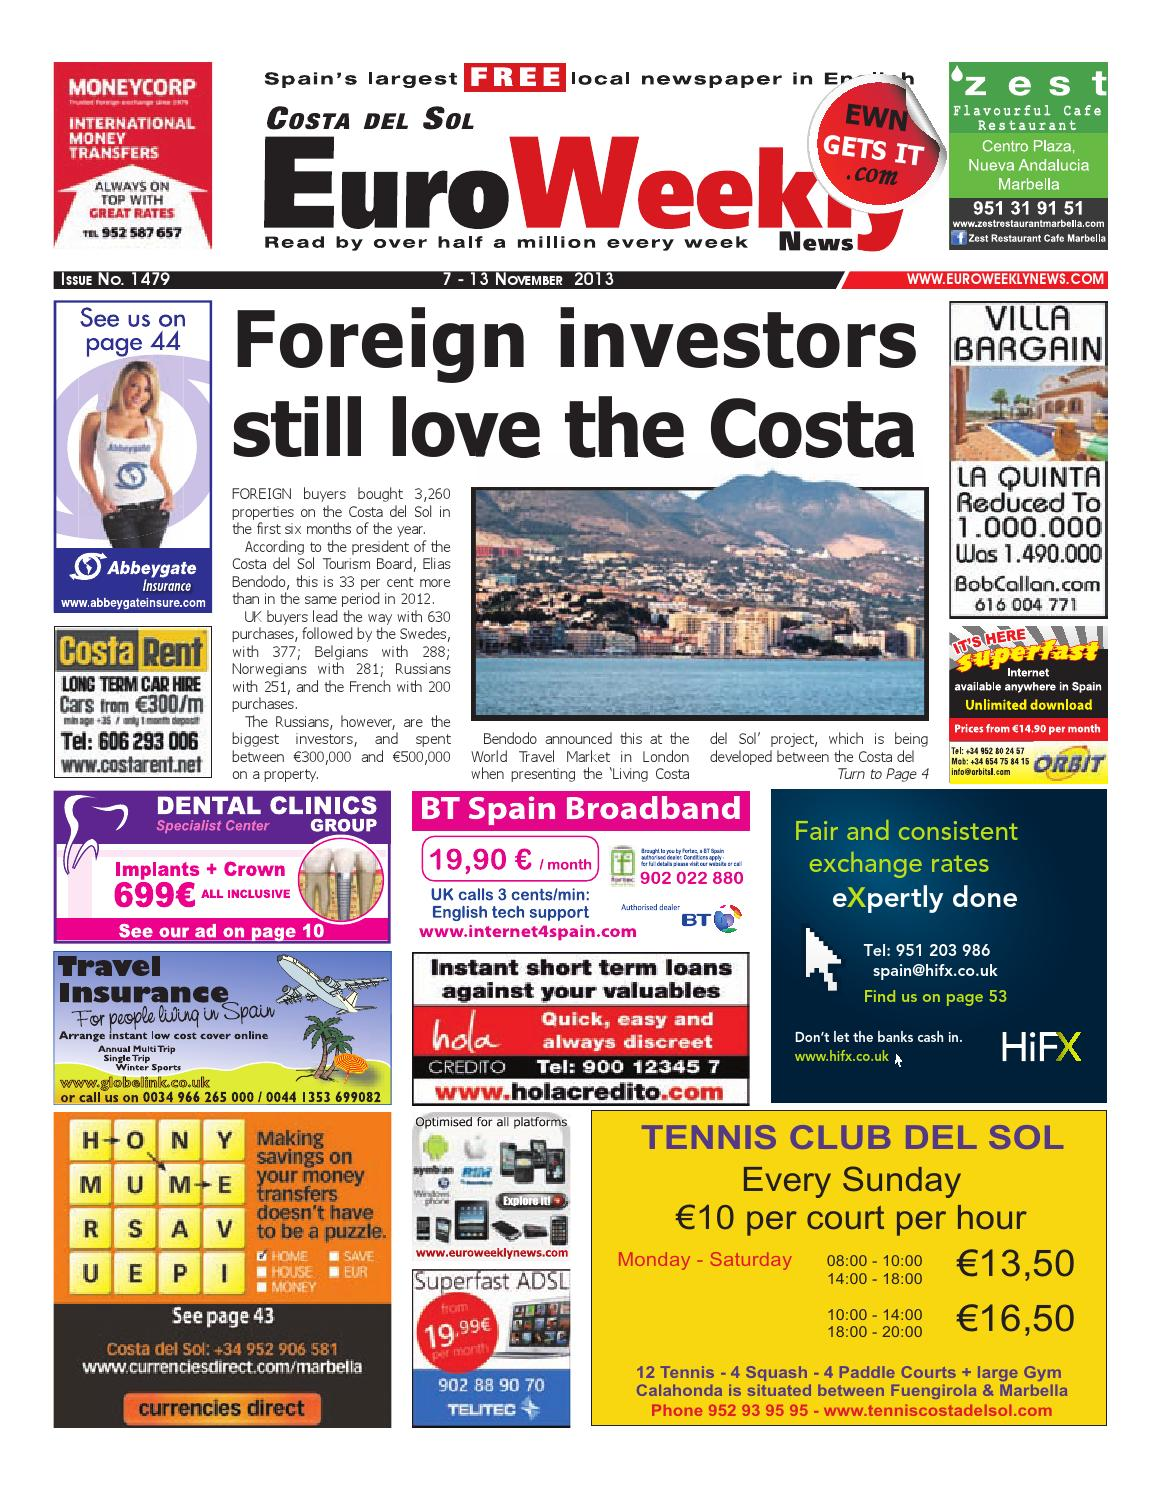 Euro weekly news costa del sol 7 13 november 2013 issue 1479 by euro weekly news costa del sol 7 13 november 2013 issue 1479 by euro weekly news media sa issuu fandeluxe Image collections